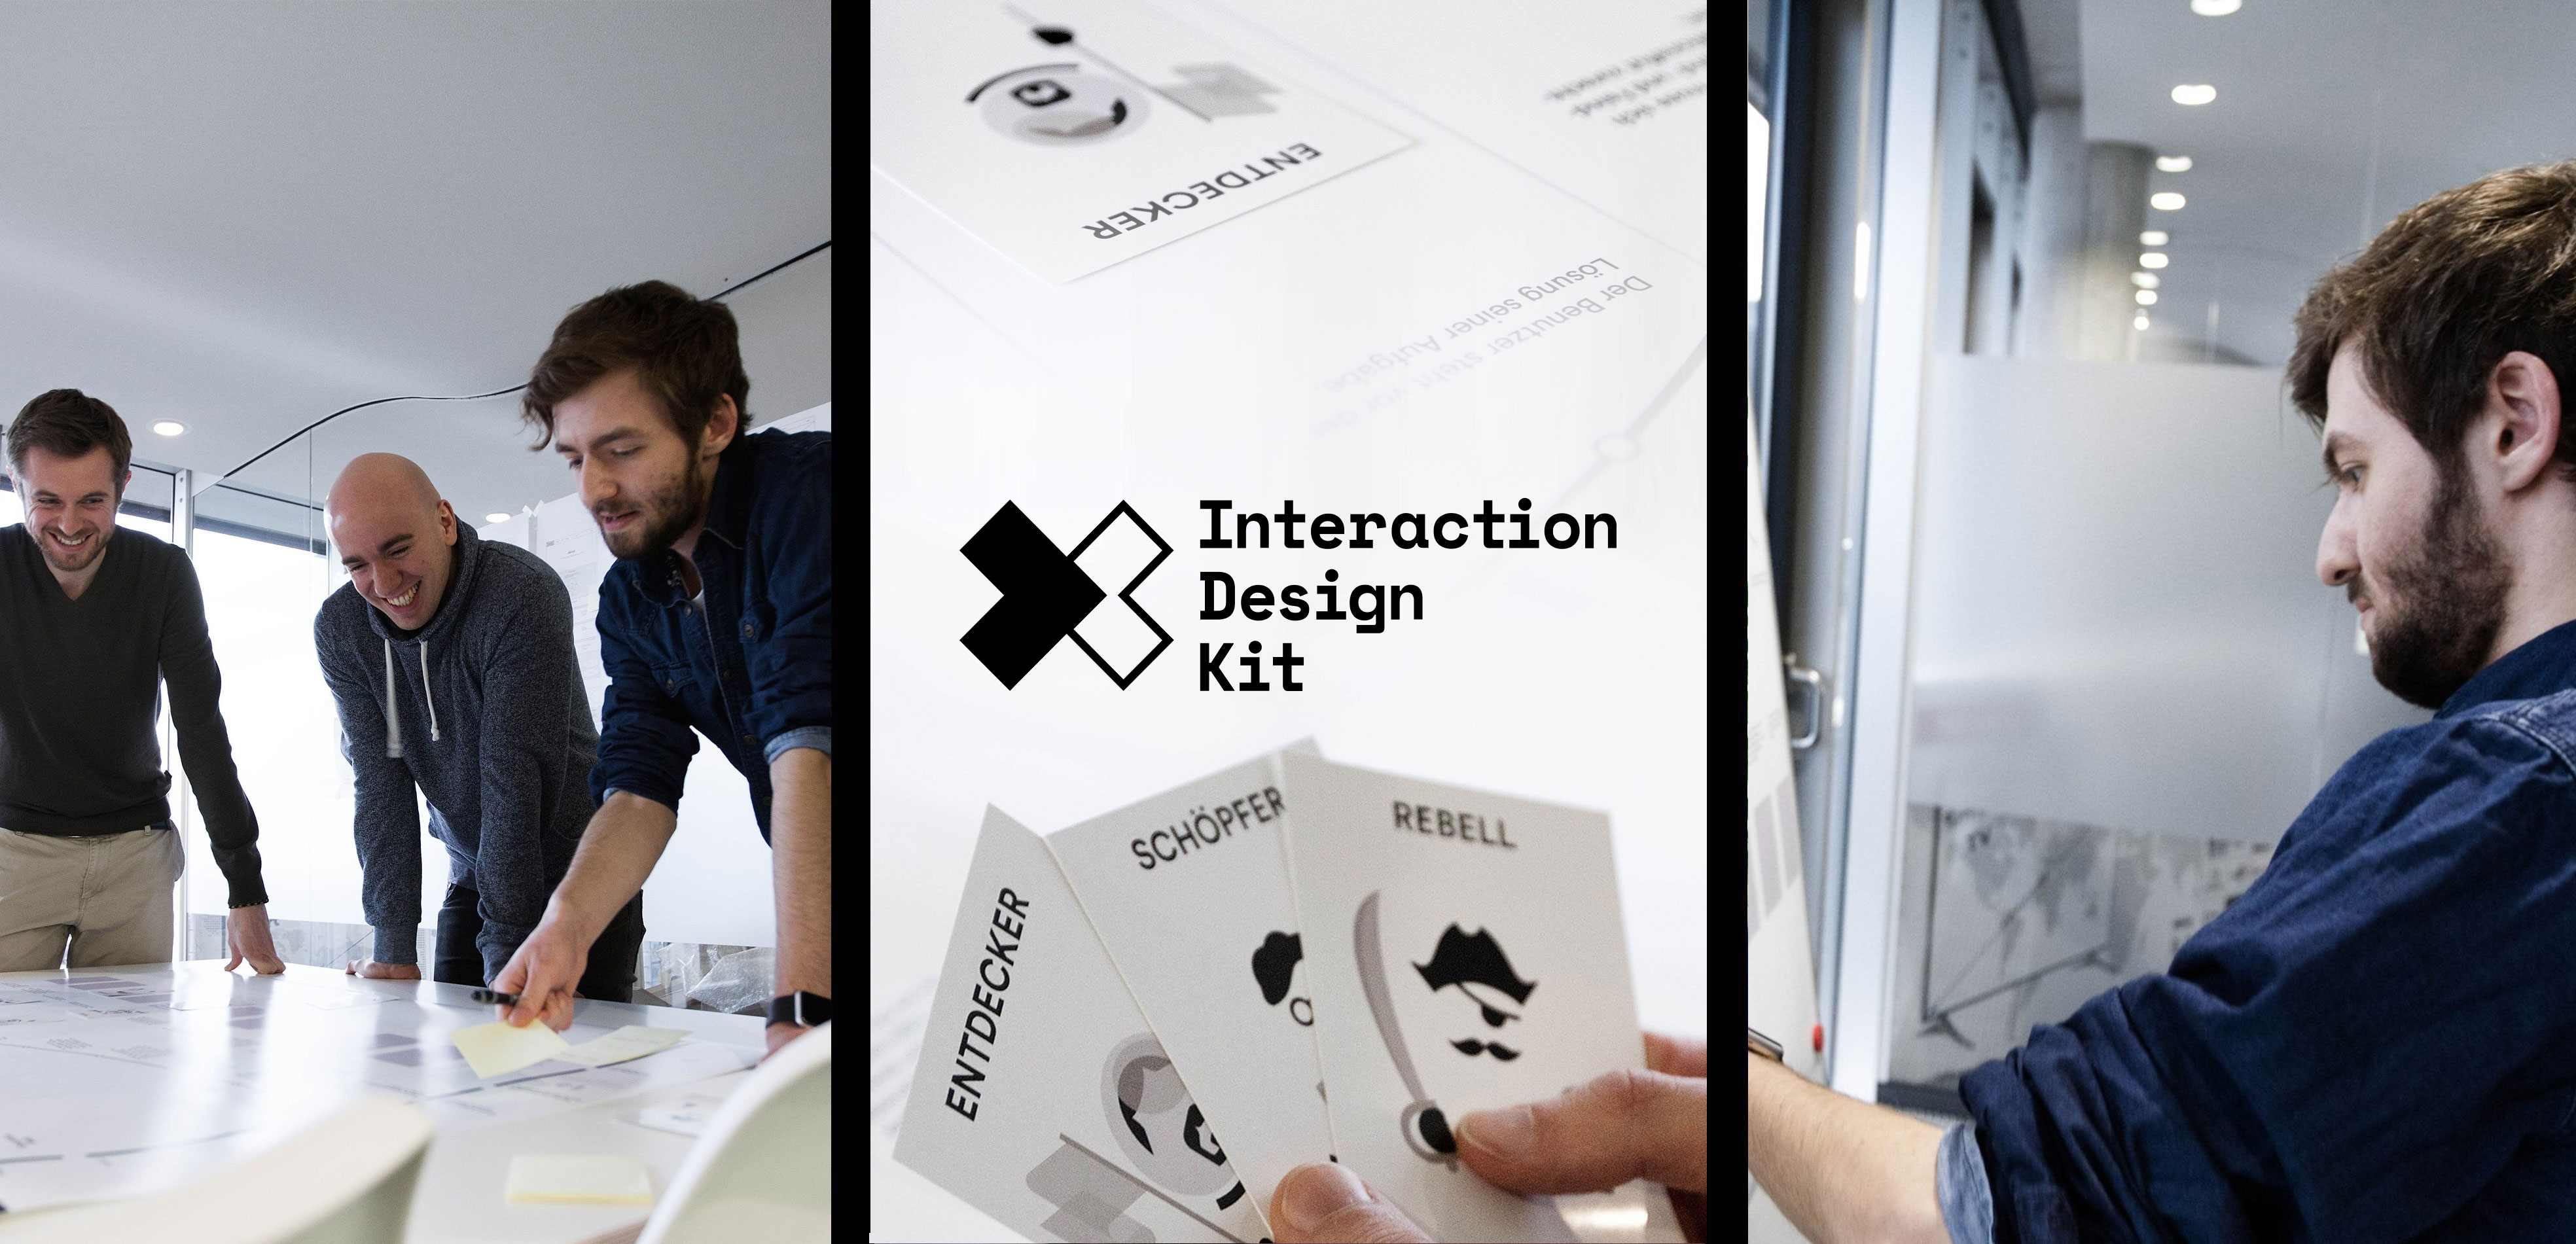 enes-uenal-interaction-design-kit-storytelling-workshop-frankfurt